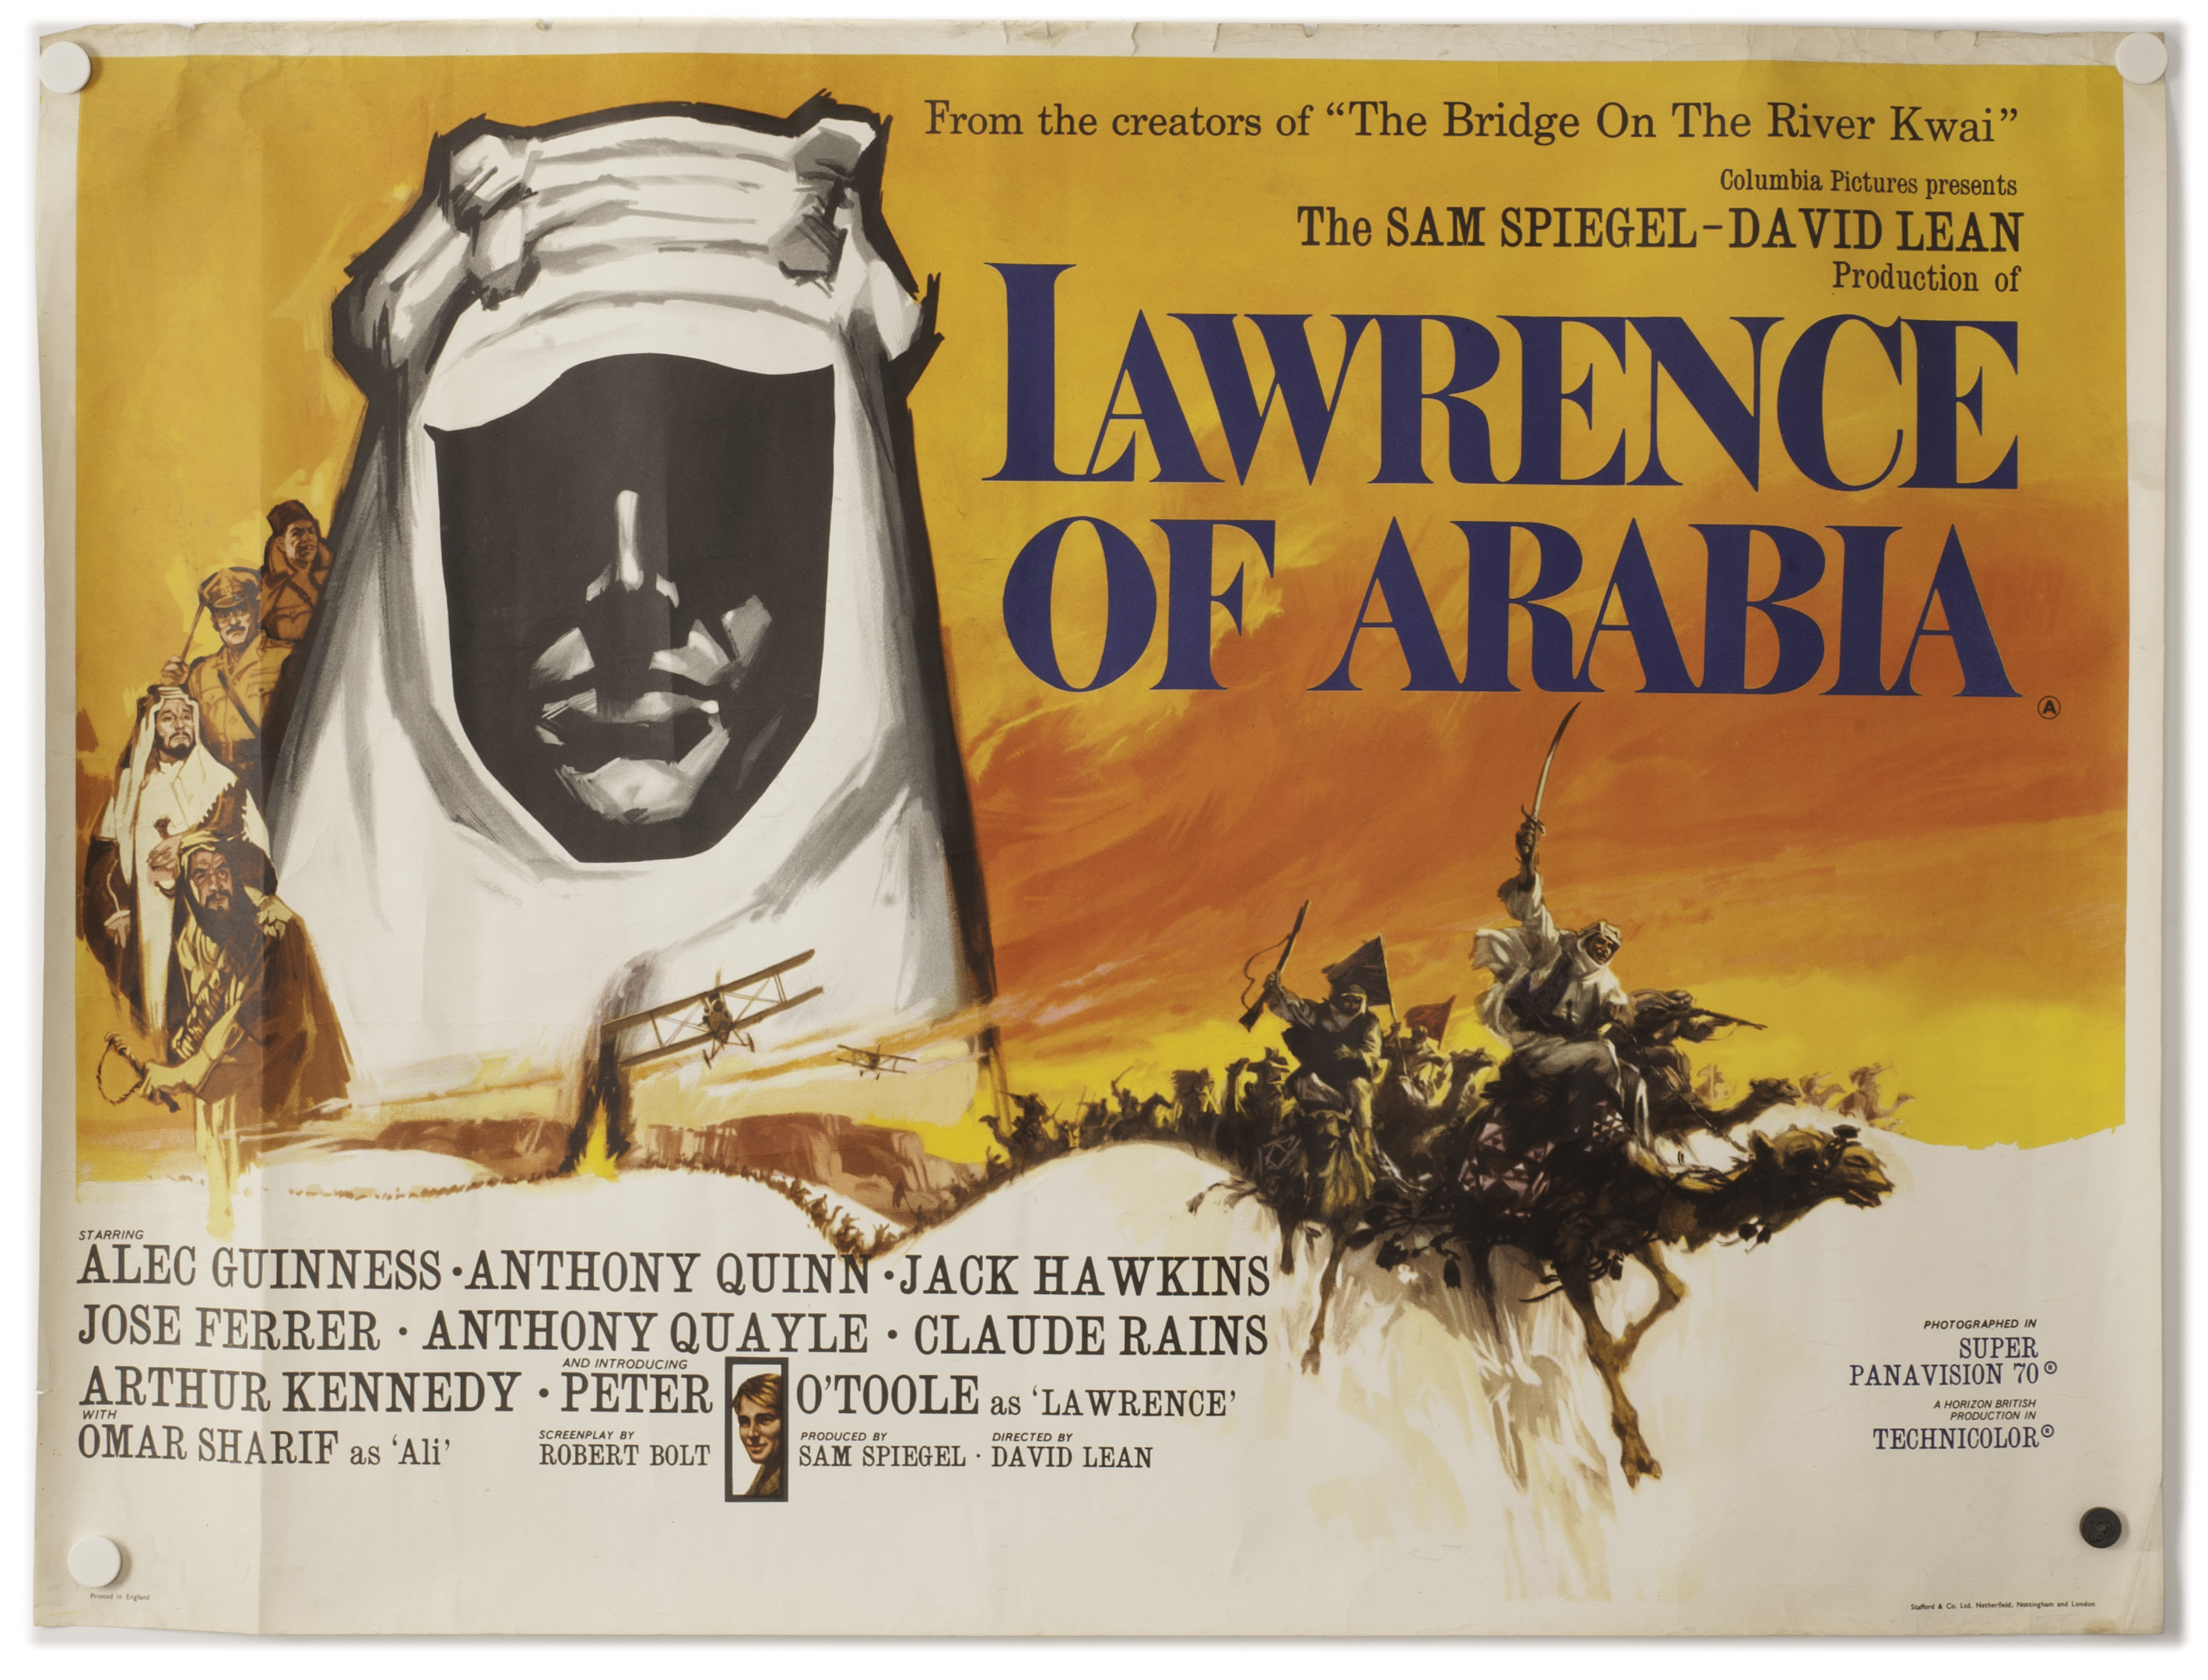 Lot 335 - Lawrence Of Arabia: Original UK quad poster for the 1962 film